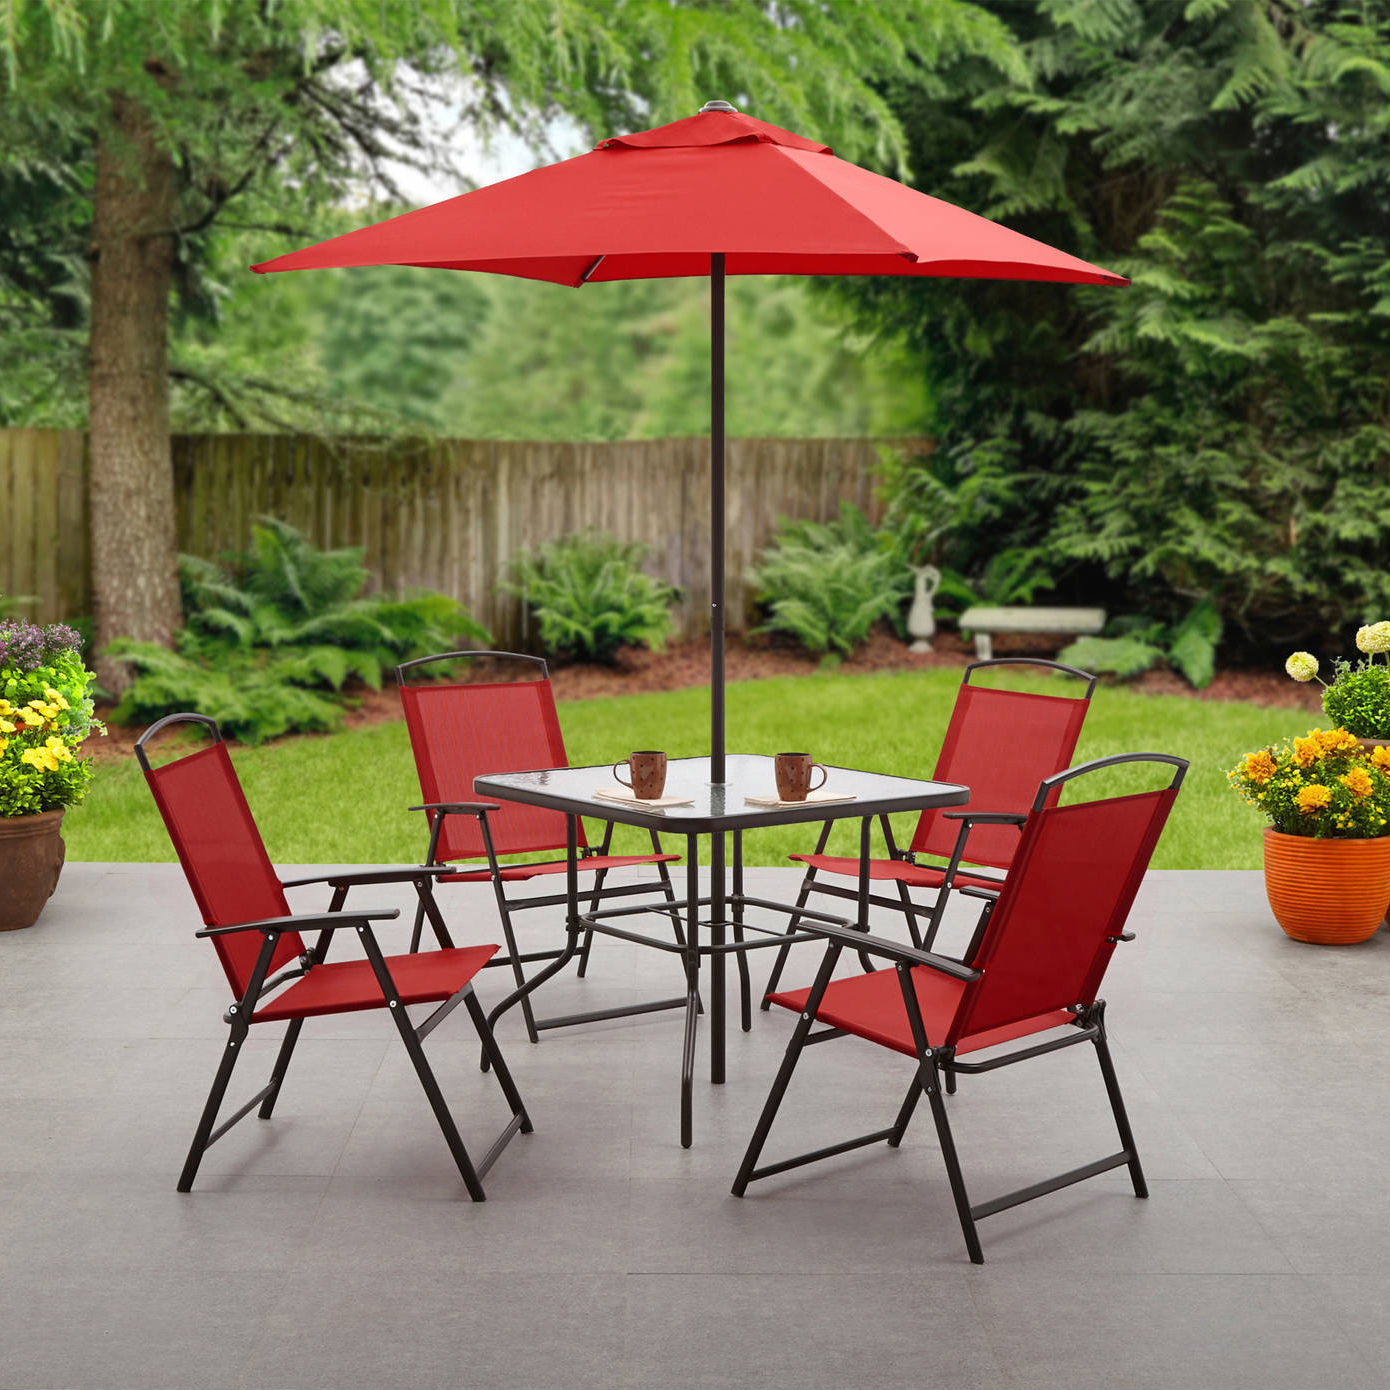 Mainstays Albany Lane 6-Piece Outdoor Patio Dining Set